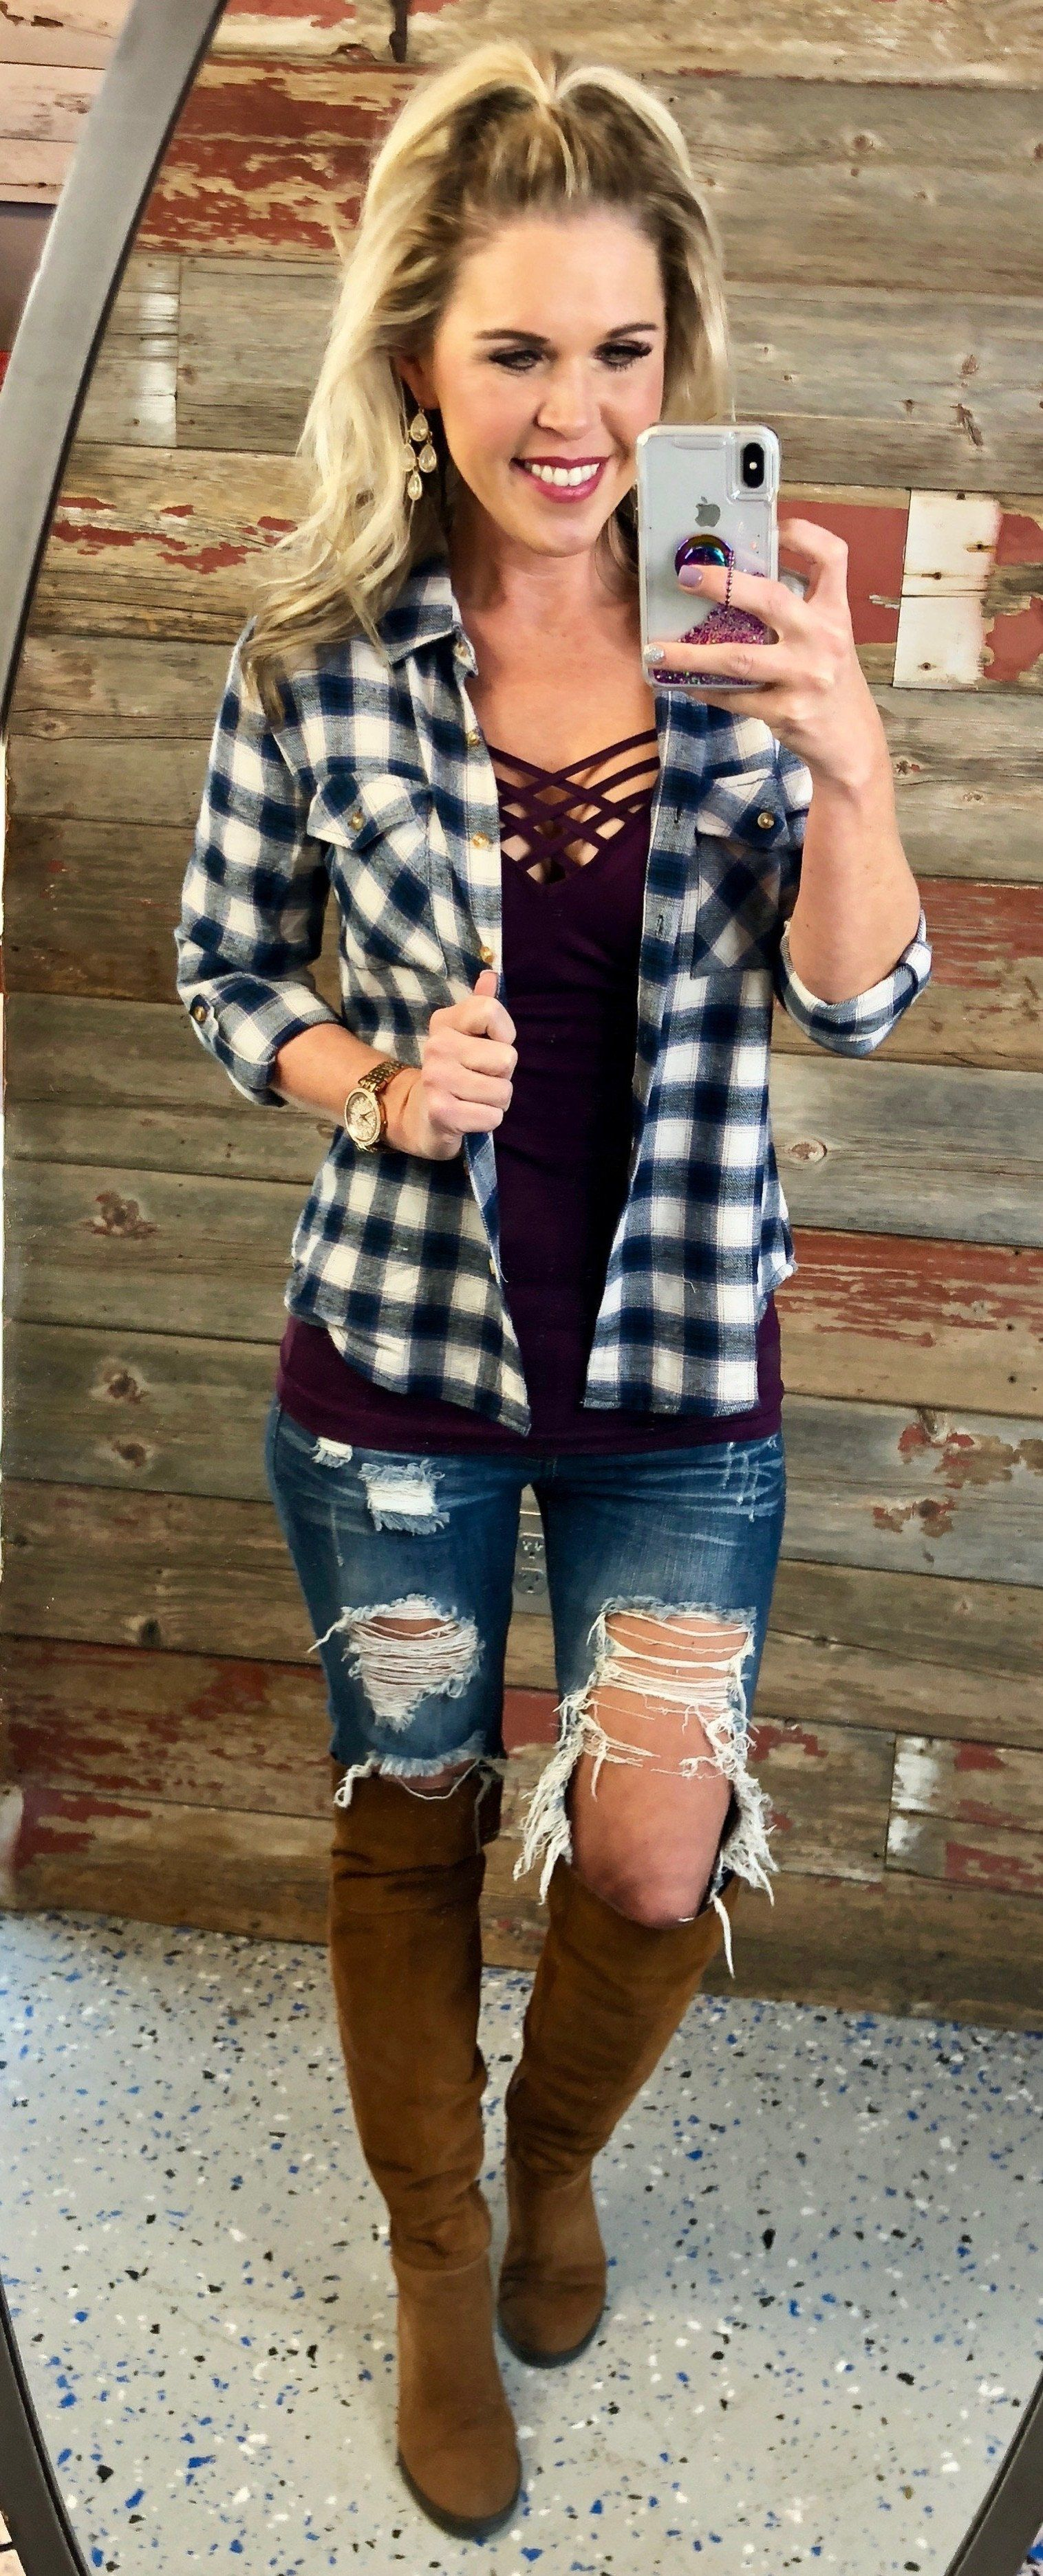 Flannel shirt outfits for women  Cabin Fever Plaid Flannel Top from privityboutique  style inspo